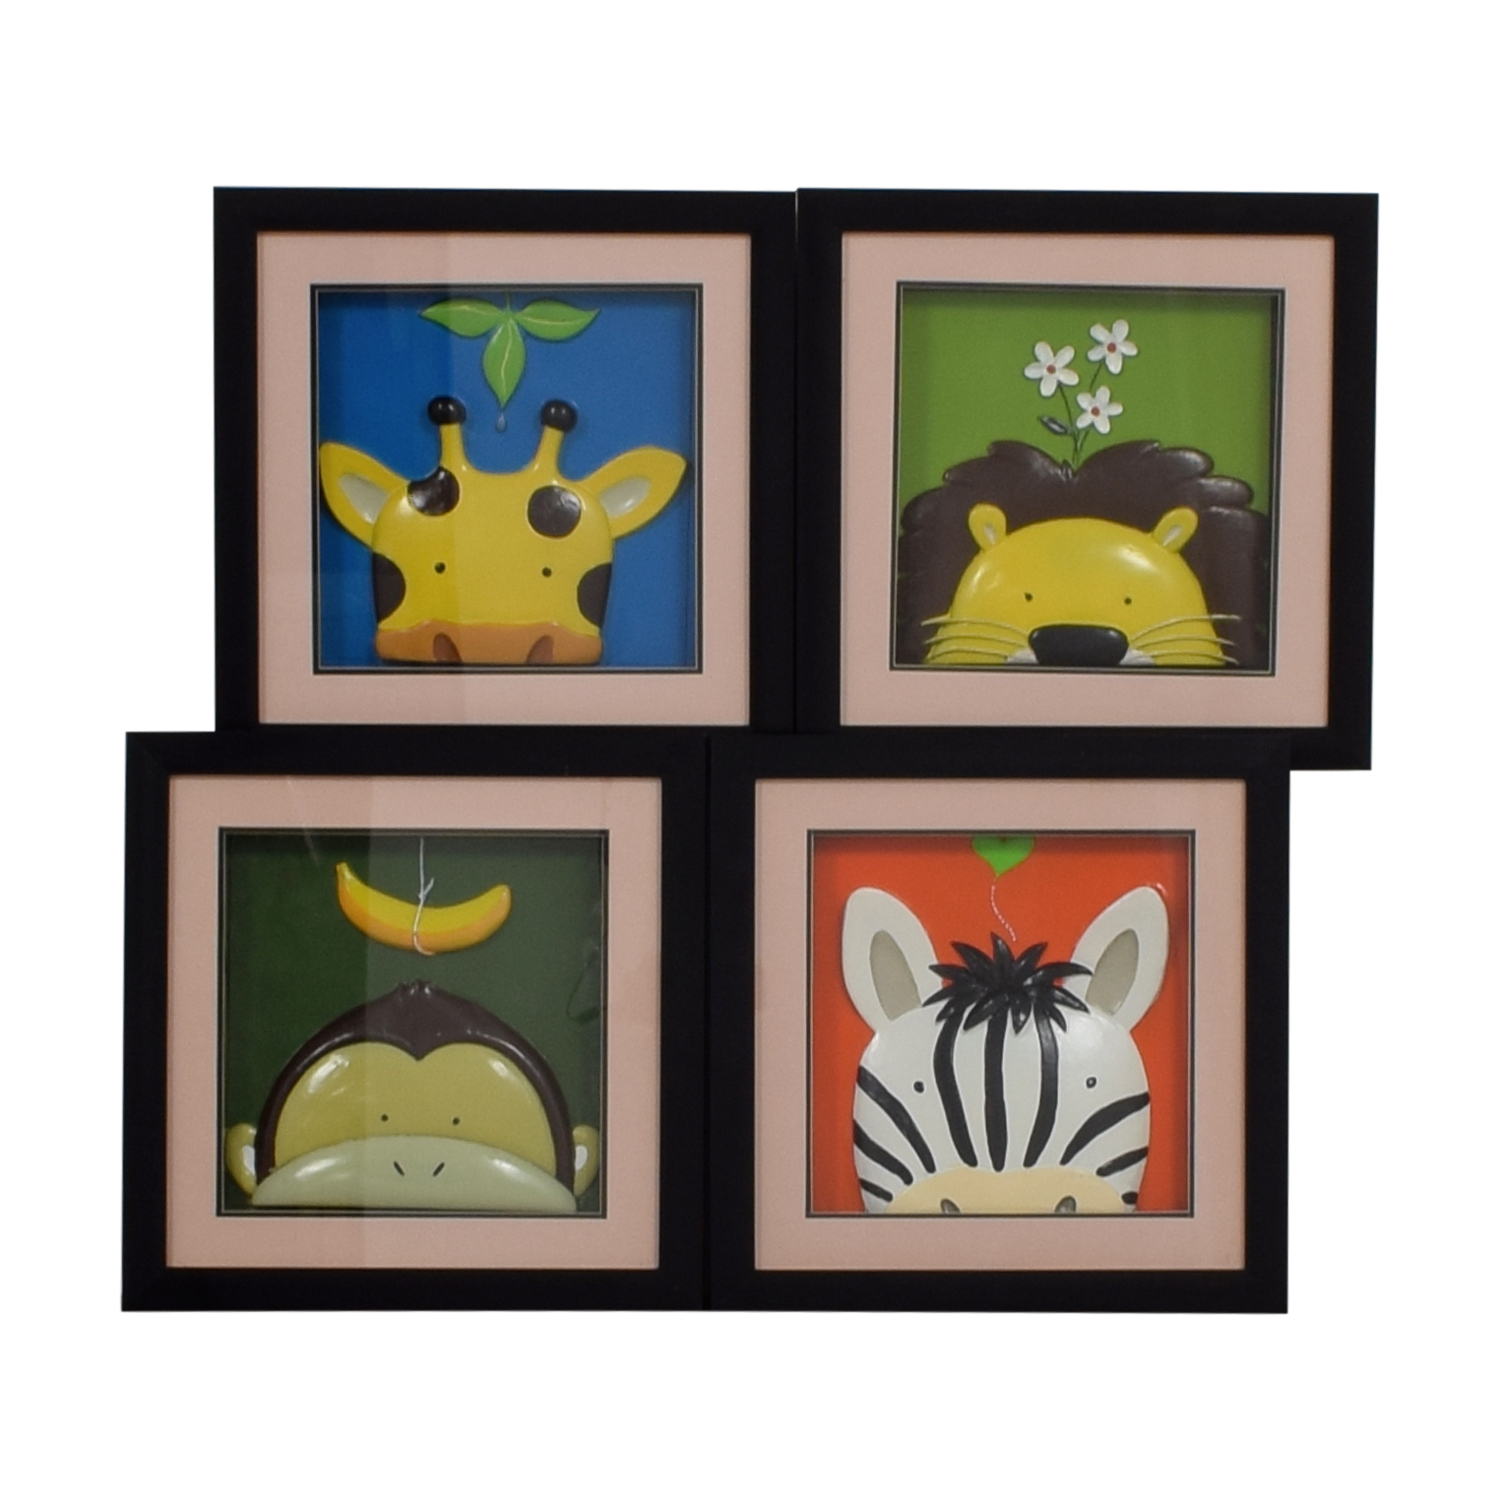 Yuko Lau Yuko Lau Peek-A-Boo Framed Jungle Animals used